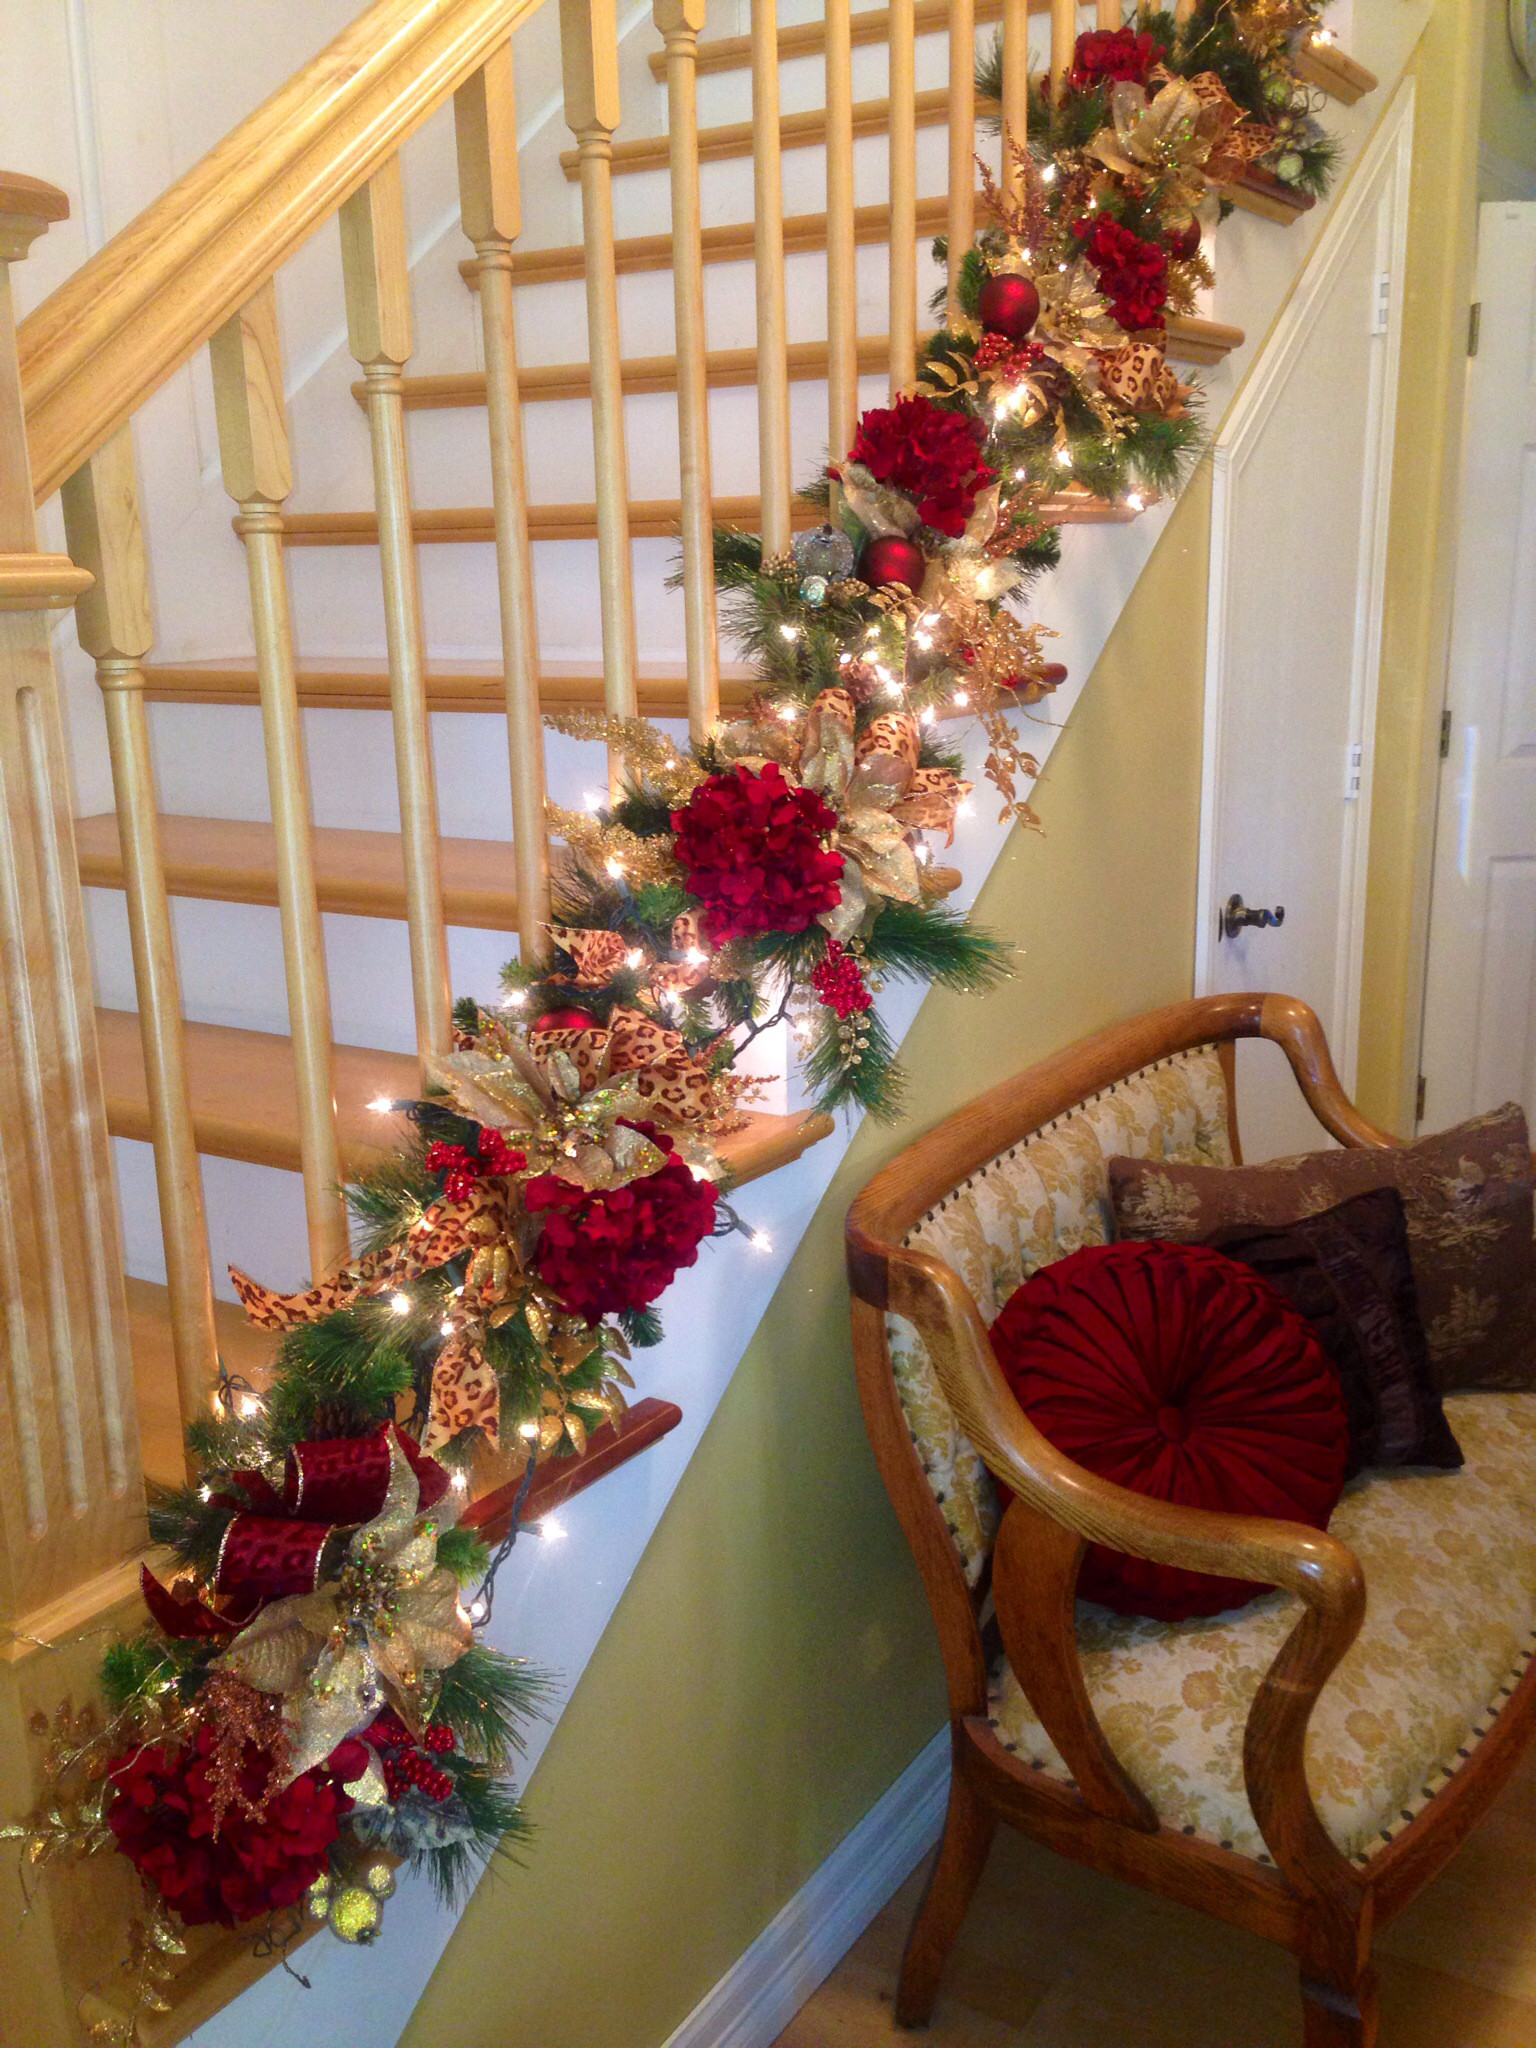 Staircase Christmas Decorations  Decorate The Staircase For Christmas – 45 Beautiful Ideas